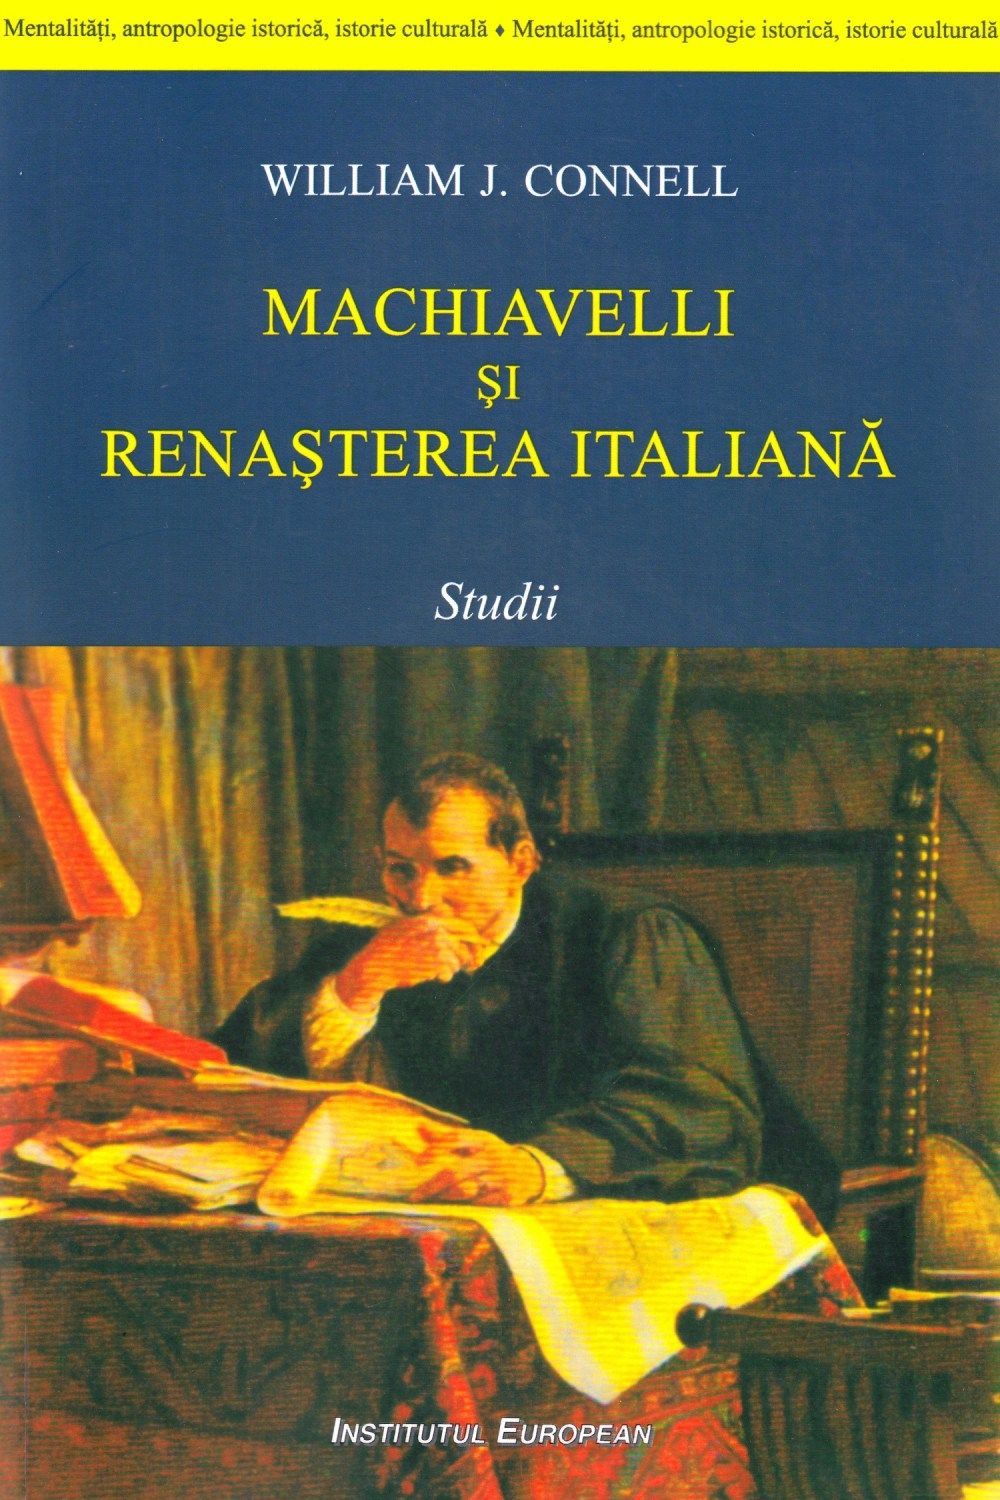 Machiavelli si renasterea italiana - William J. Connell